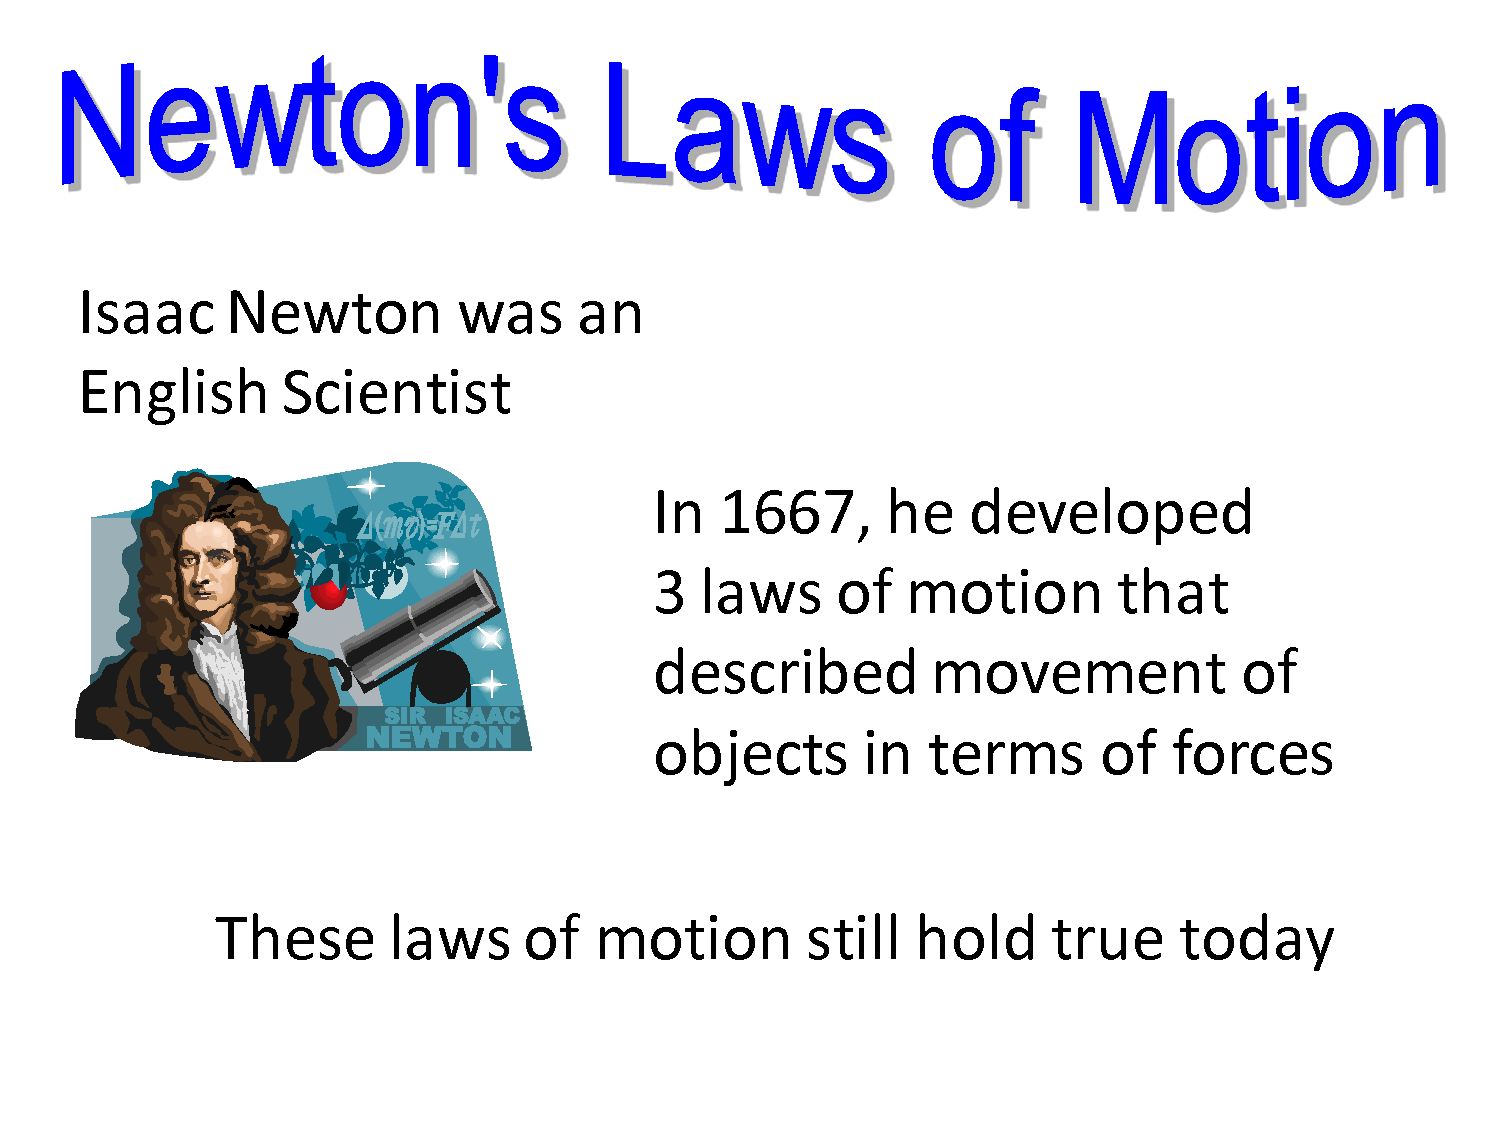 Three Laws of Motion by Sir Isaac Newton | Know-It-All